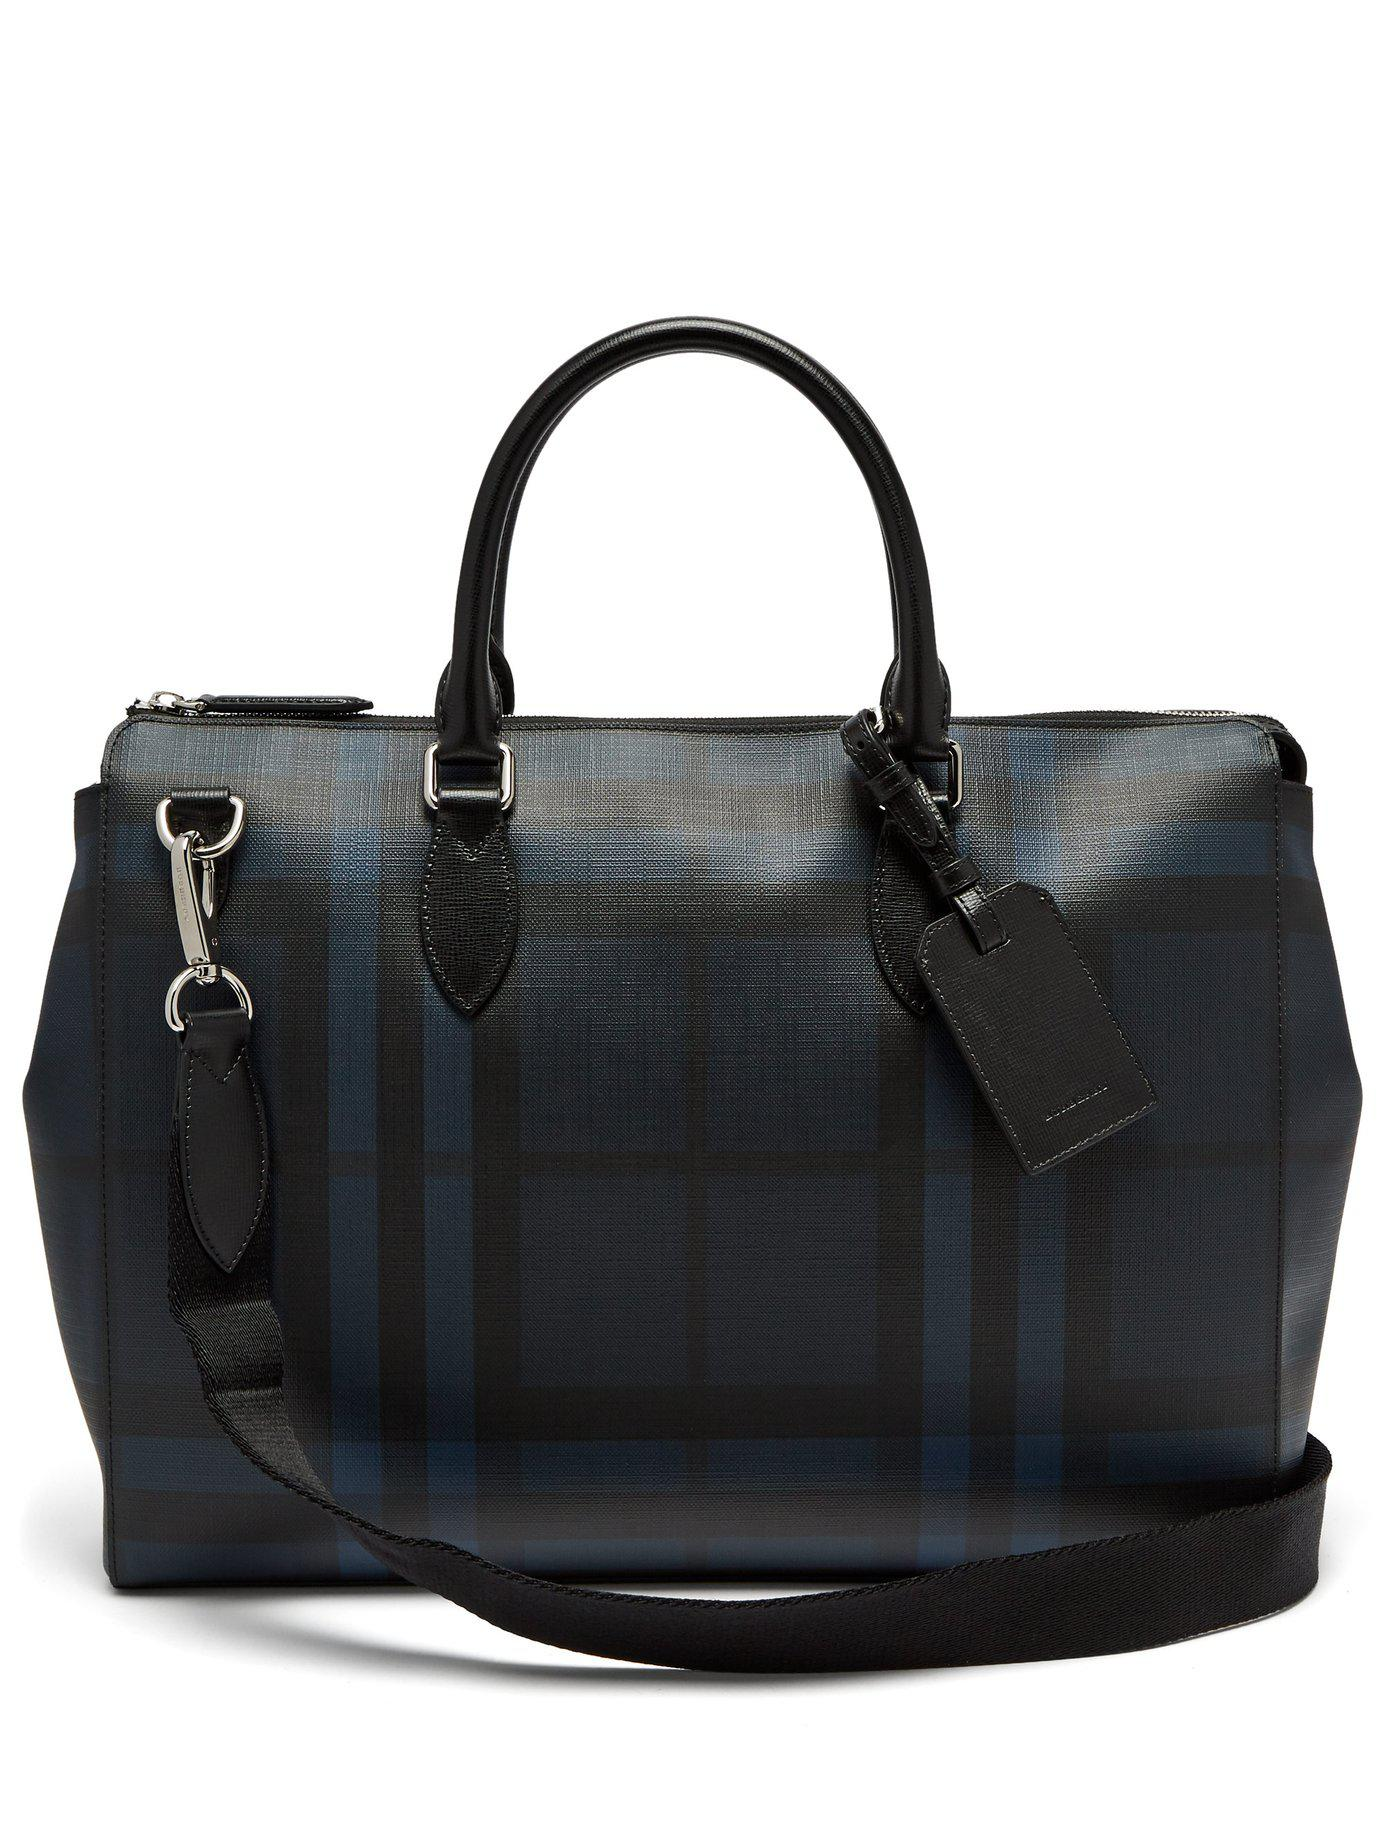 51bb332bbbf0 Lyst - Burberry London-check Leather Tote in Black